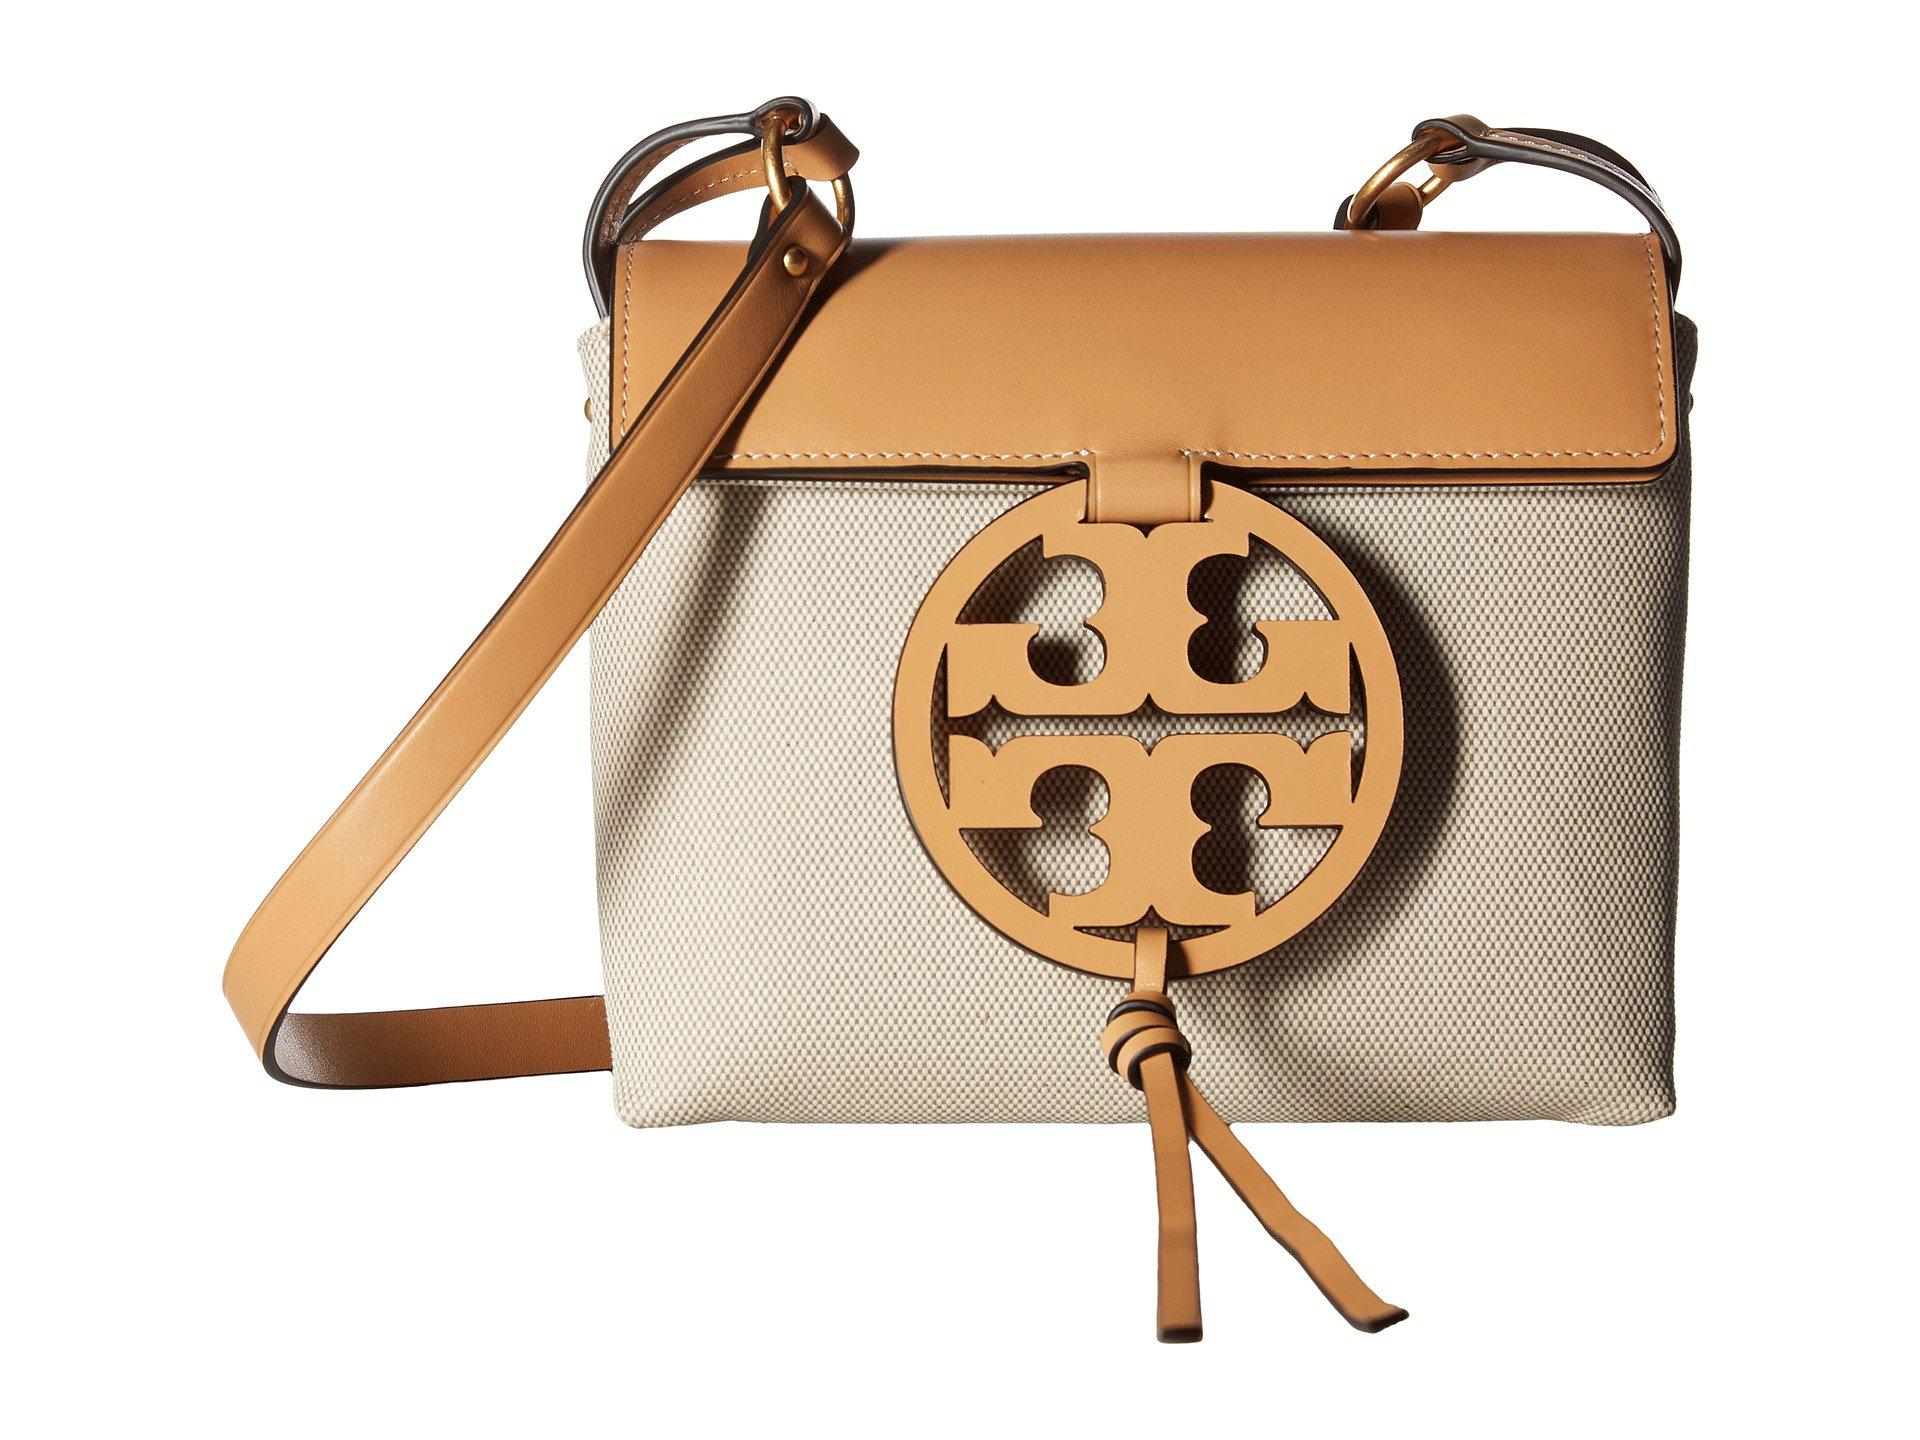 502c7248ea3 Lyst - Tory Burch Miller Crossbody Canvas (natural vachetta ...